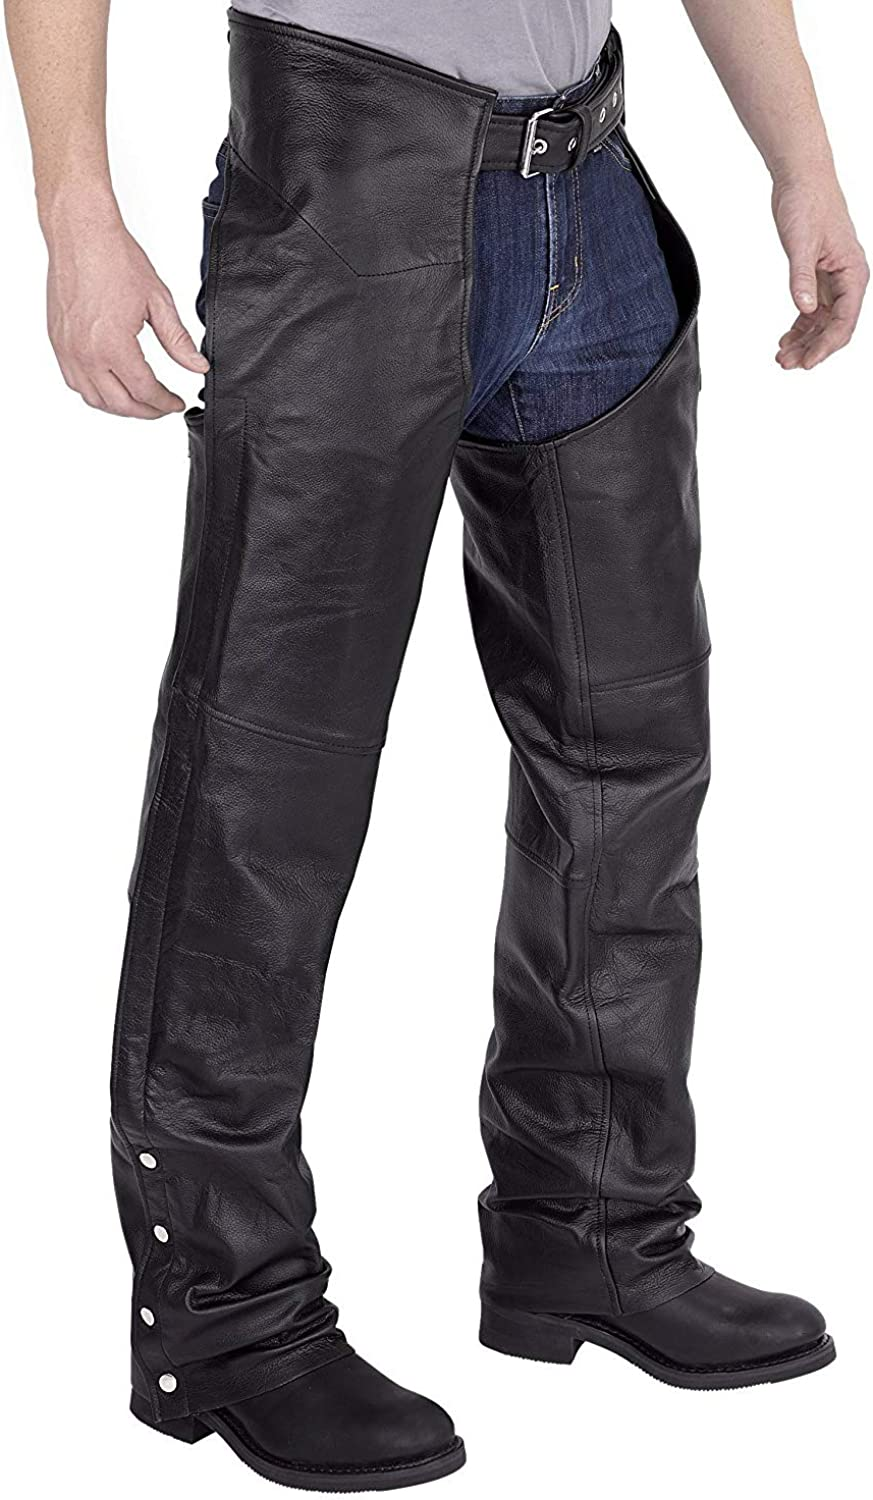 Viking Cycle Leather Chaps Plain Motorcycle Leather Chaps For Men